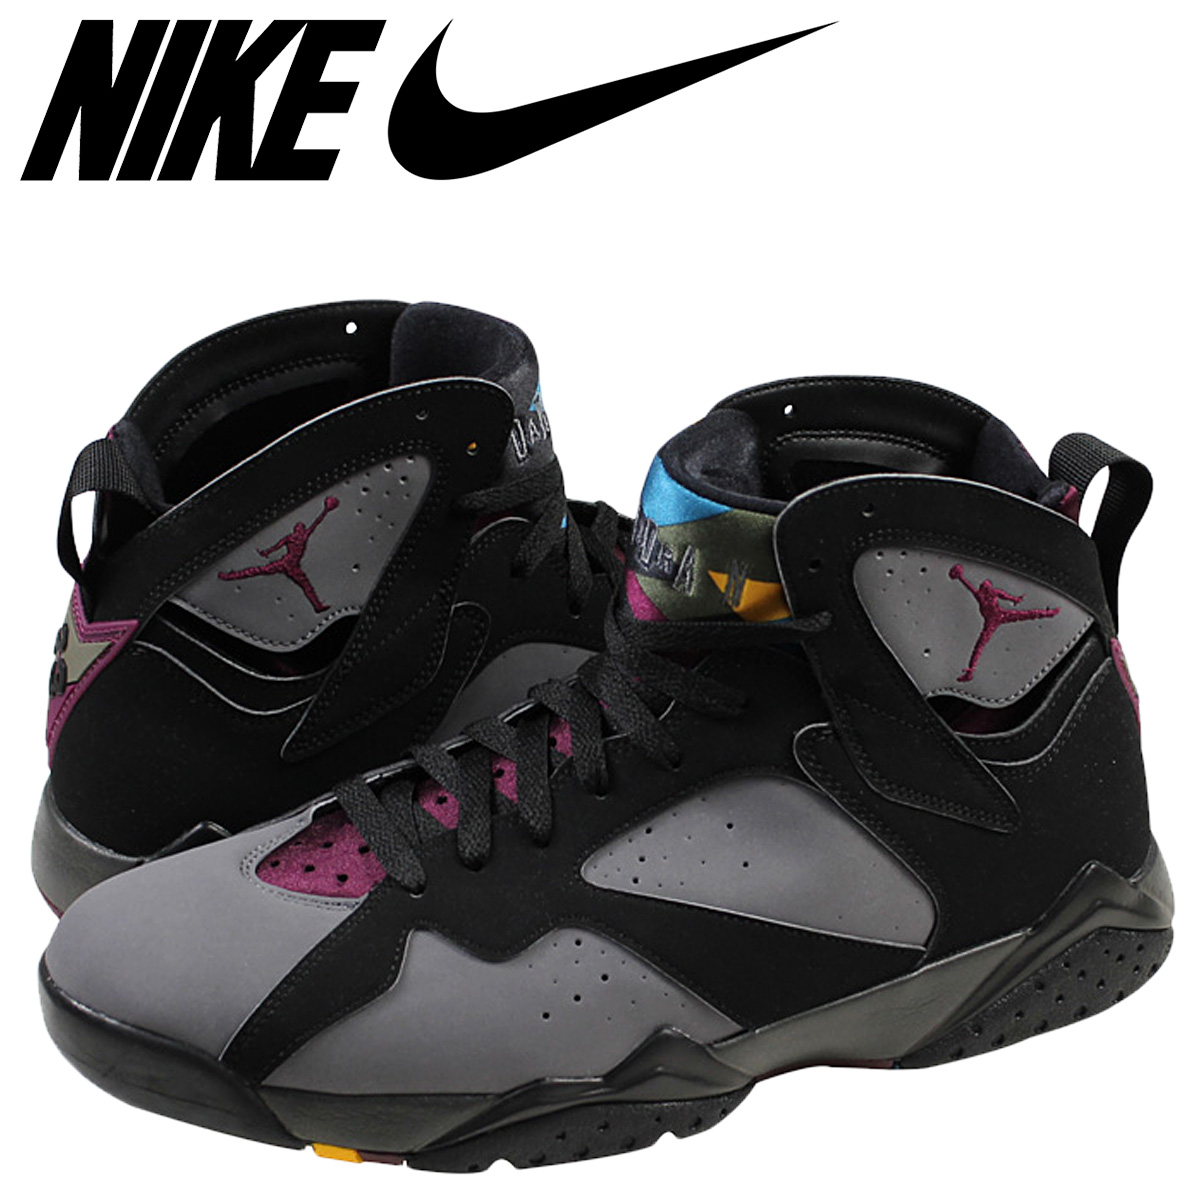 8a14b814411 Nike NIKE Air Jordan sneakers AIR JORDAN 7 RETRO BORDEAUX Air Jordan 7  retro Bordeaux 304775 ...